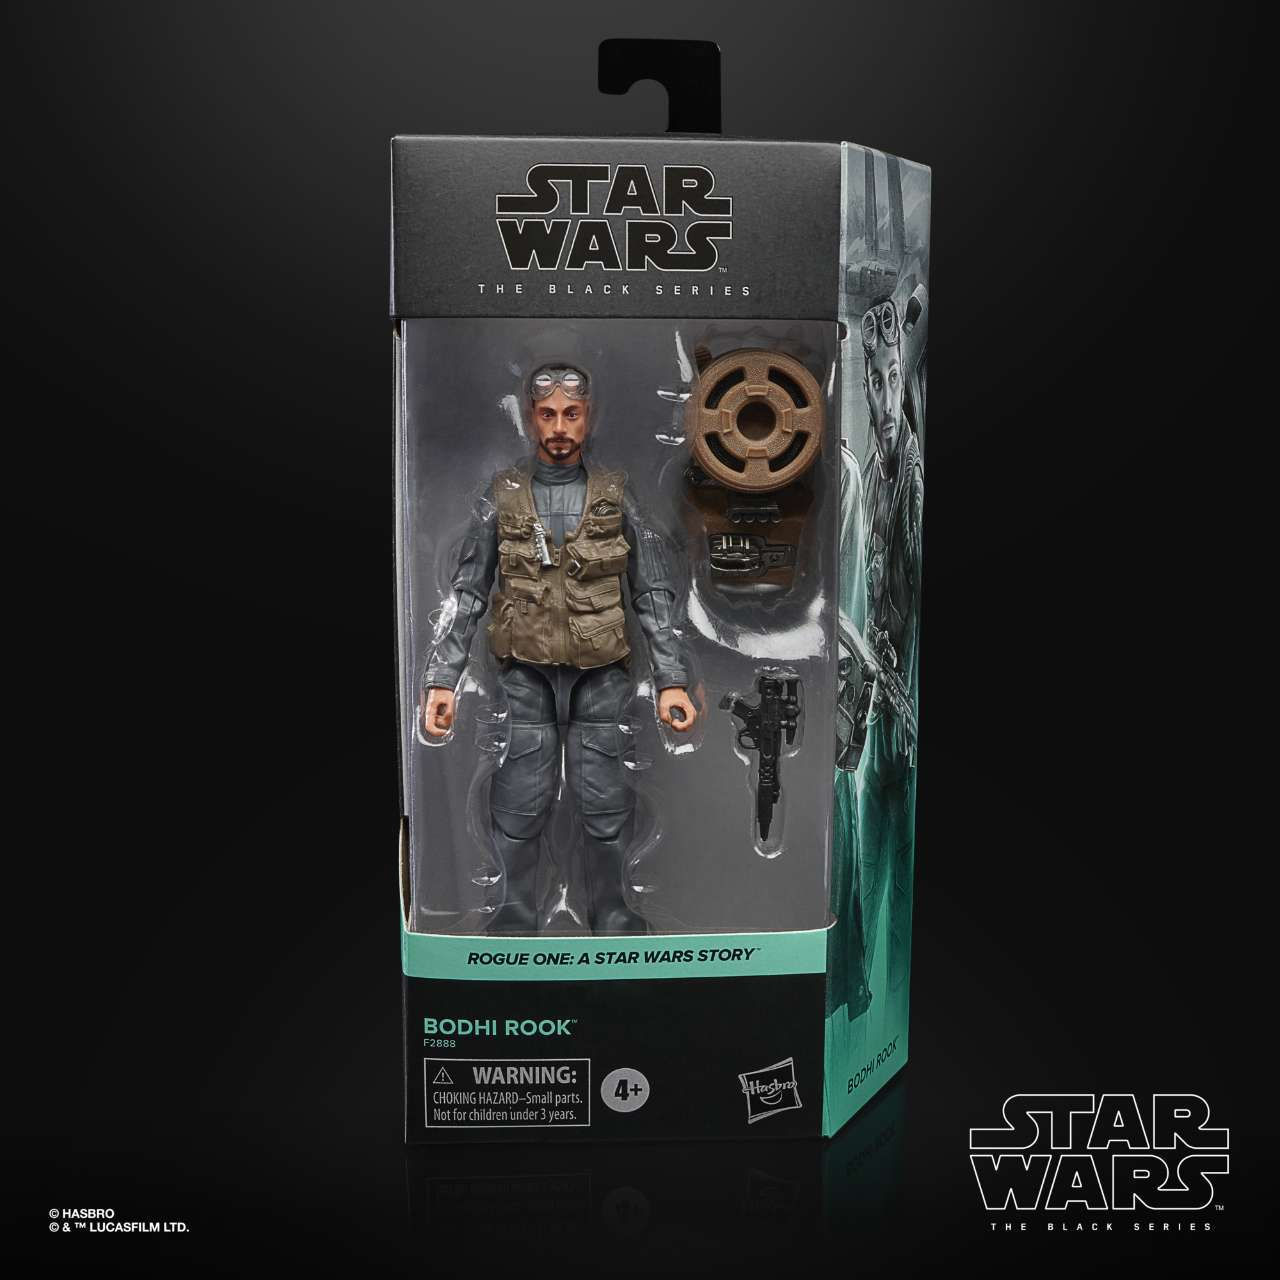 STAR WARS THE BLACK SERIES 6-INCH BODHI ROOK Figure - in pck (1)